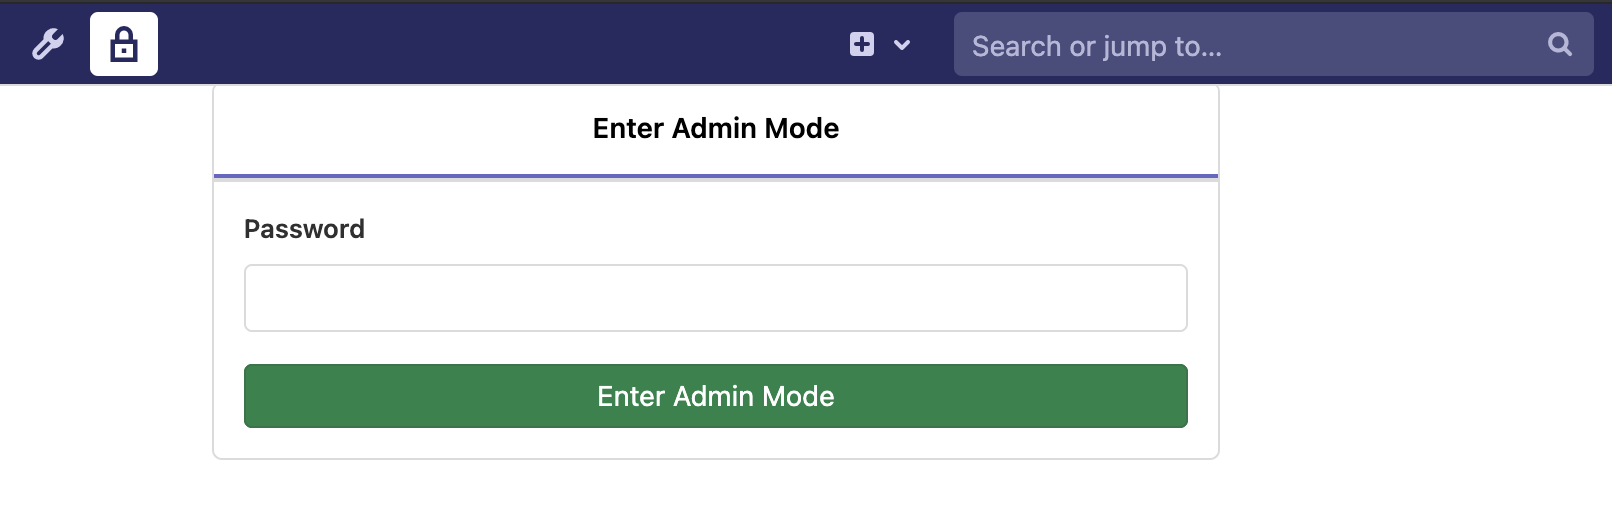 Admin Mode: Re-authenticate for GitLab administration